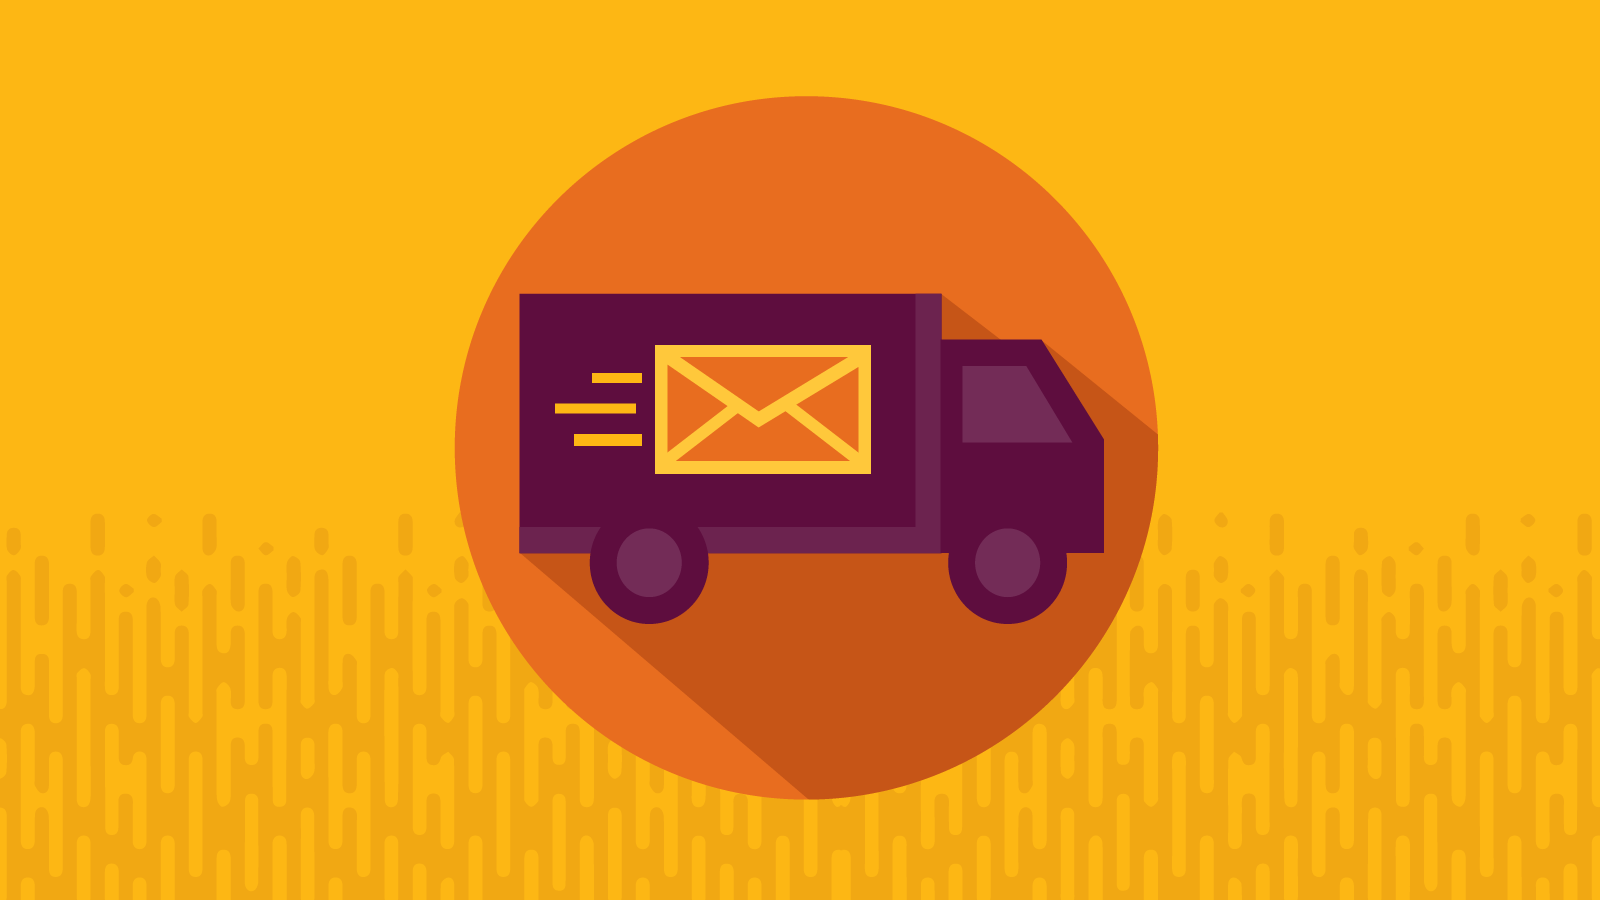 delivery truck with email envelope on the side.